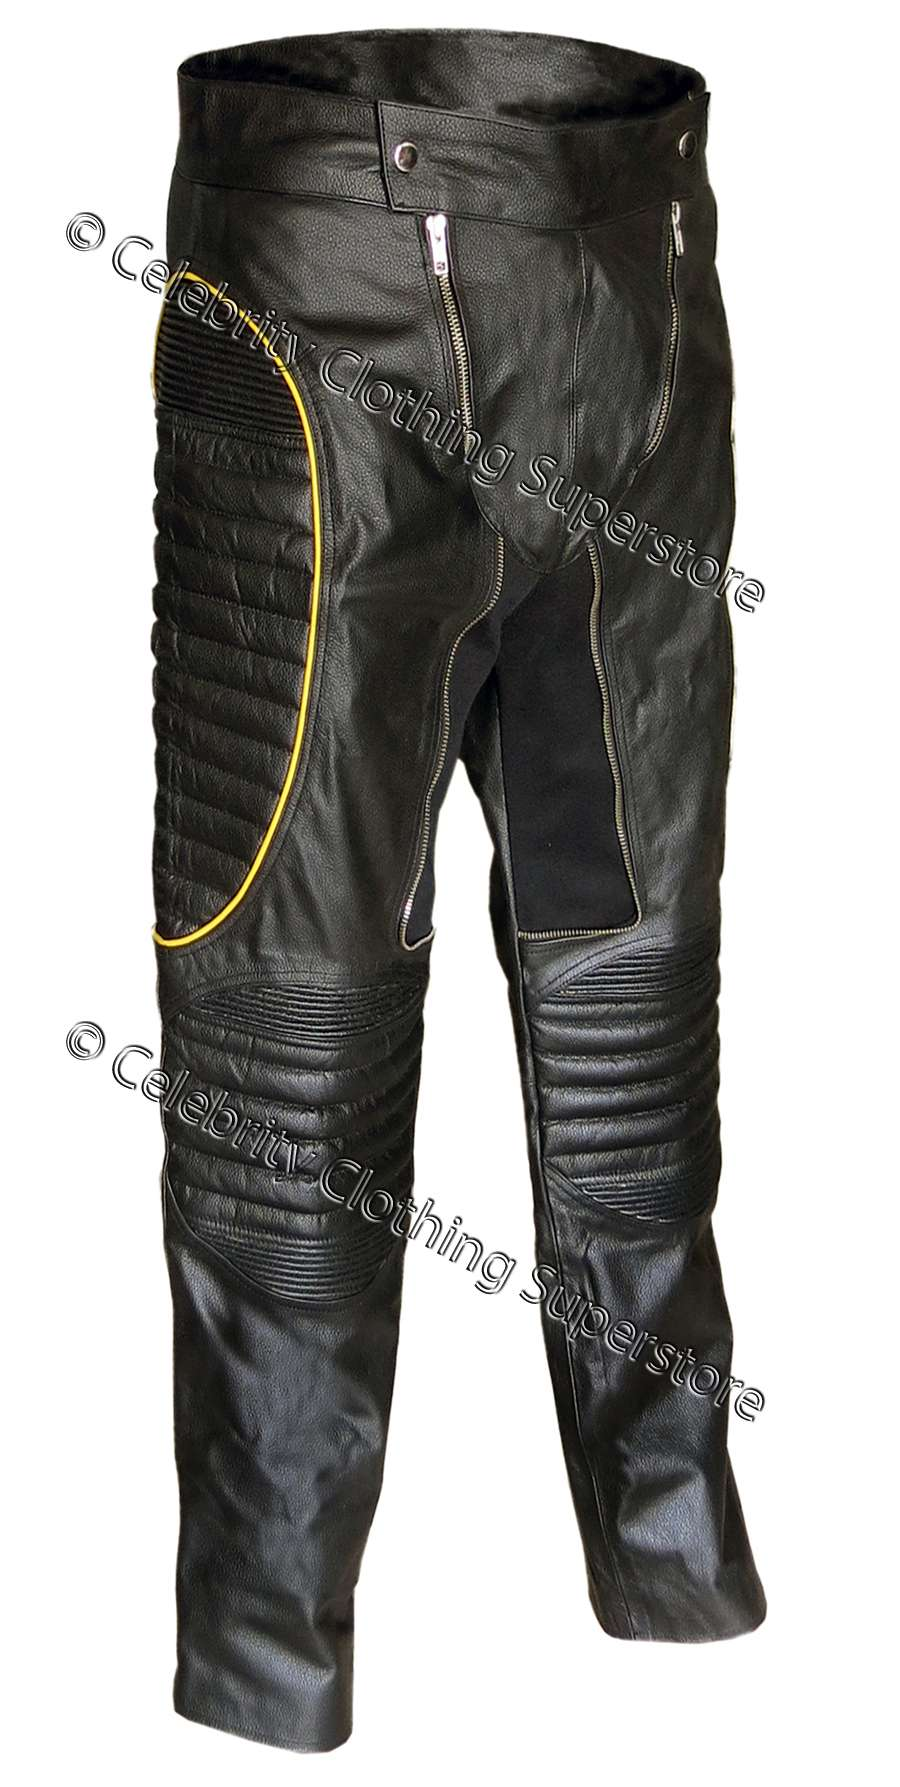 X-Men-2-Wolverine-Motorcycle-Leather-Suit-Outfit-Costume/X-Men-Wolverine-Motorcycle-Leather-Trousers.jpg